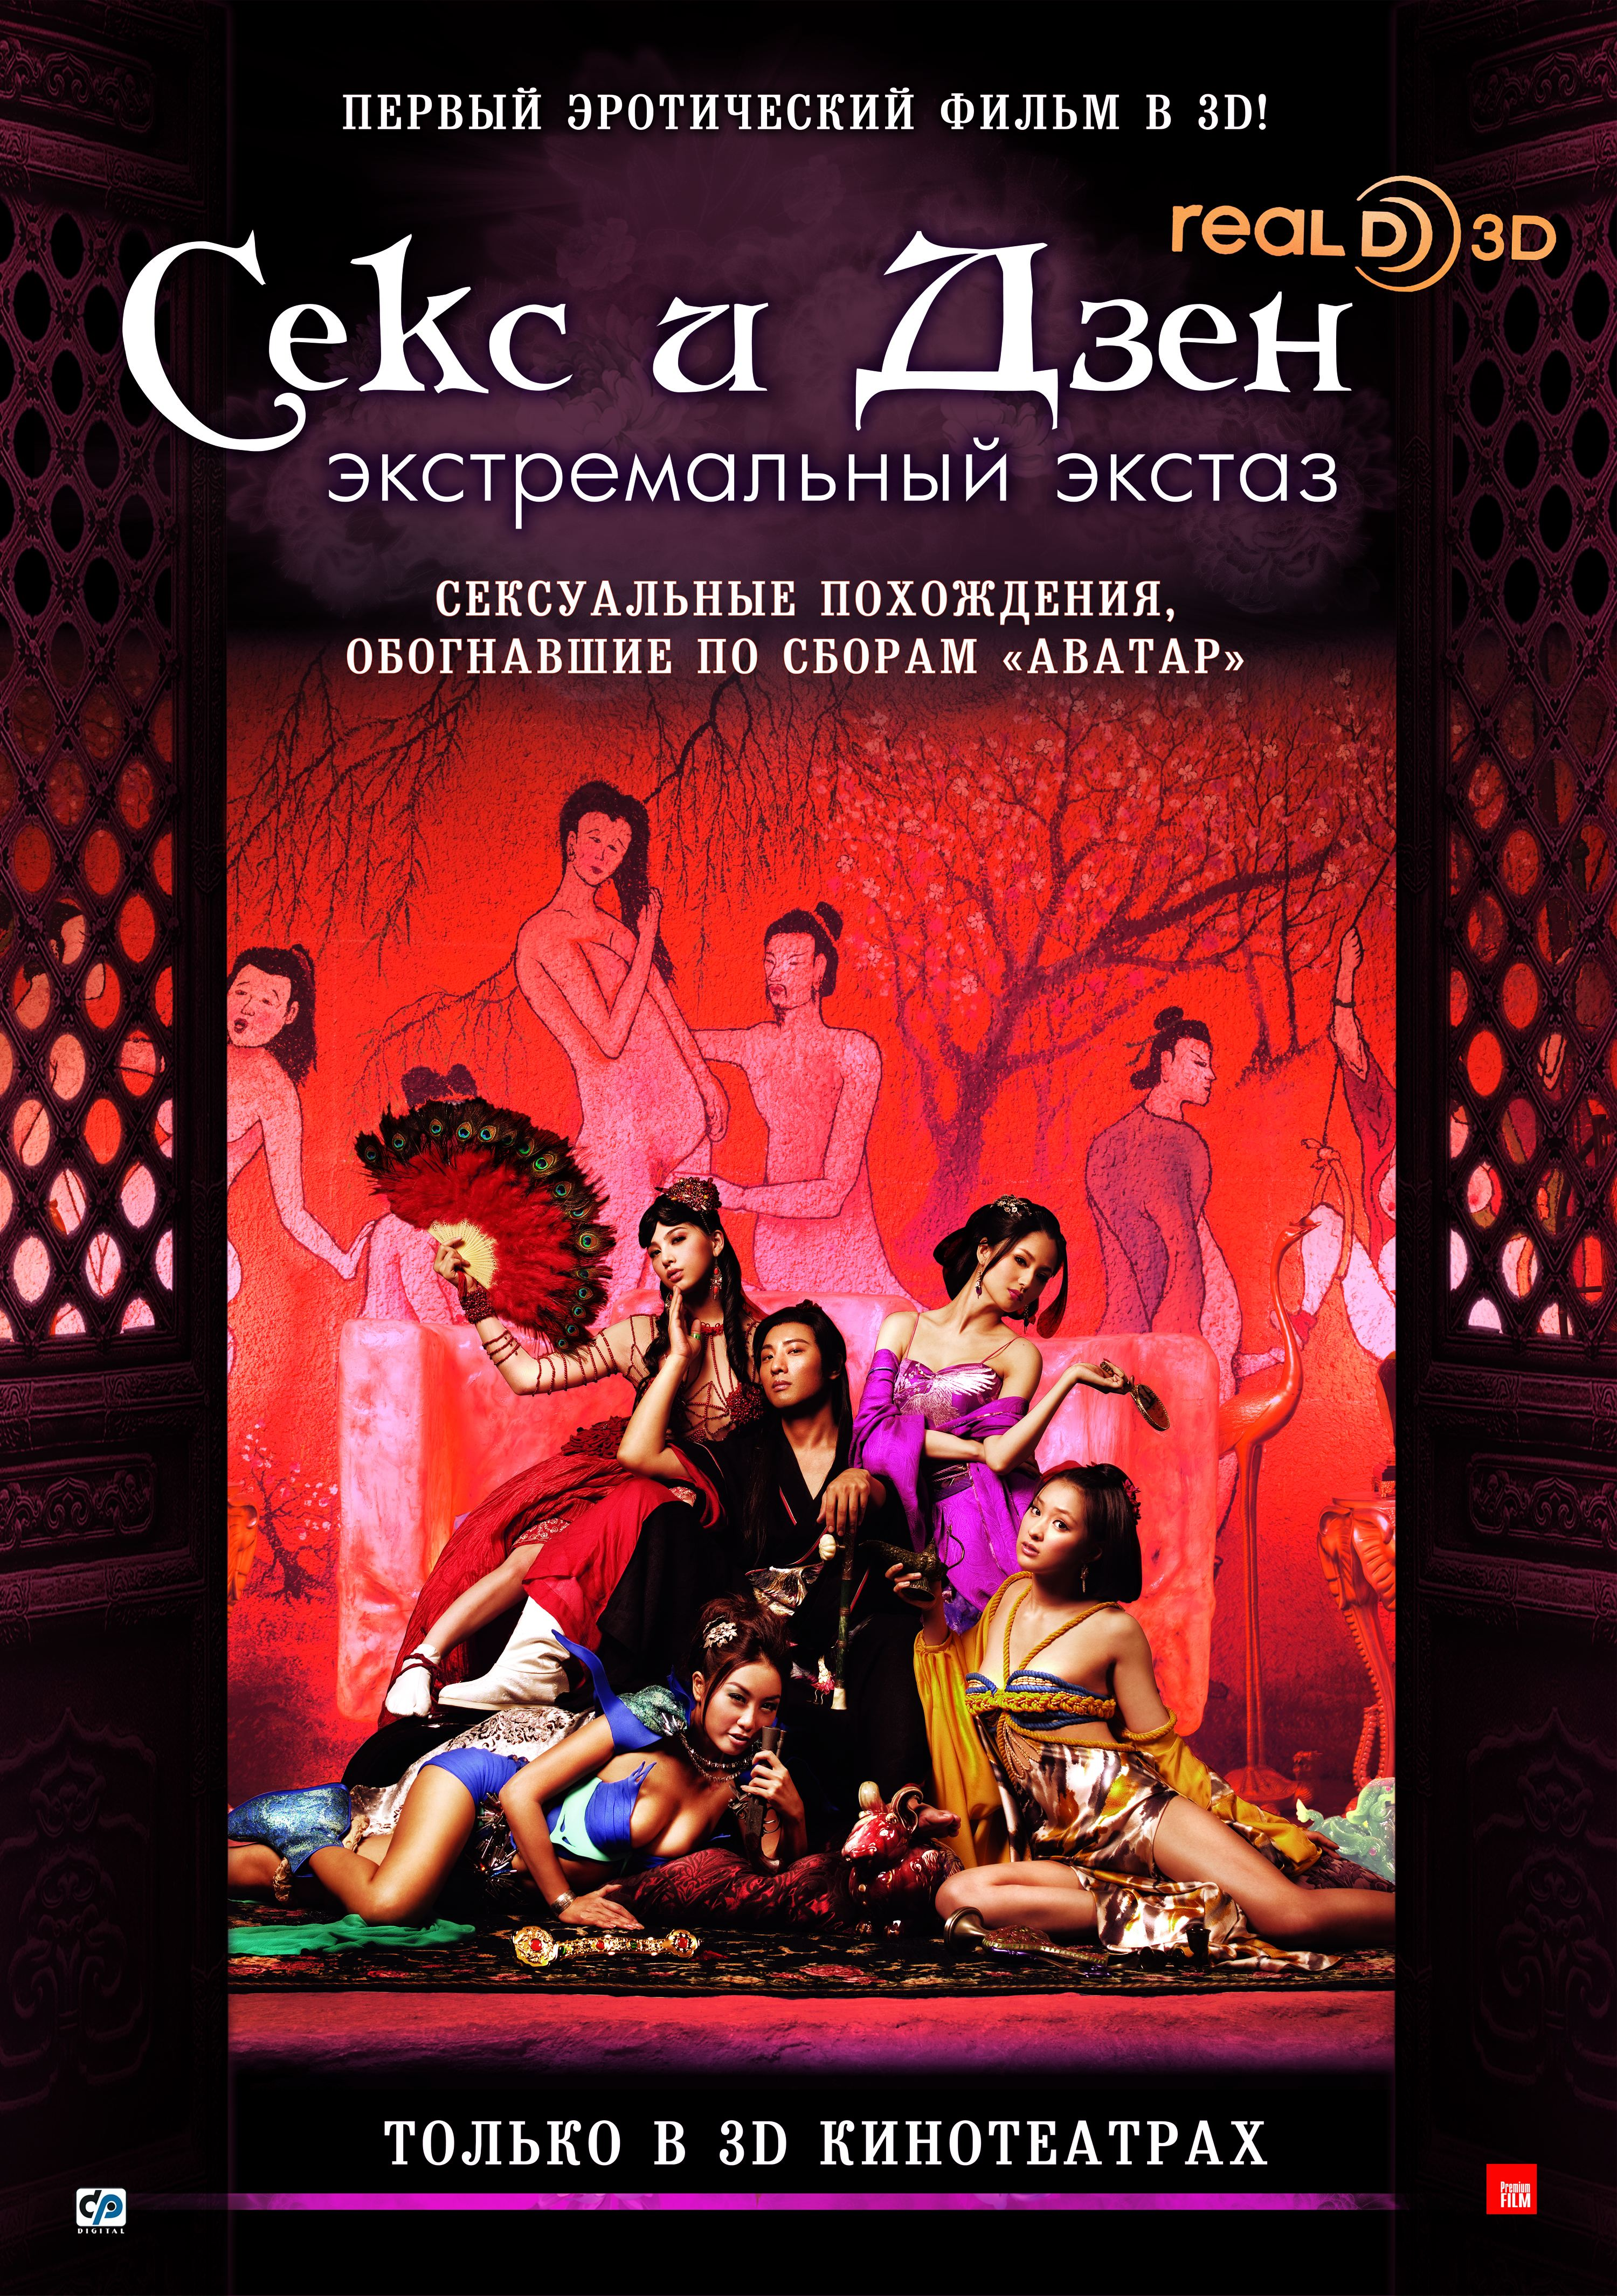 Секс и Дзен 3D / Sex and Zen 3D (2011/HDRip) скачать AVI.